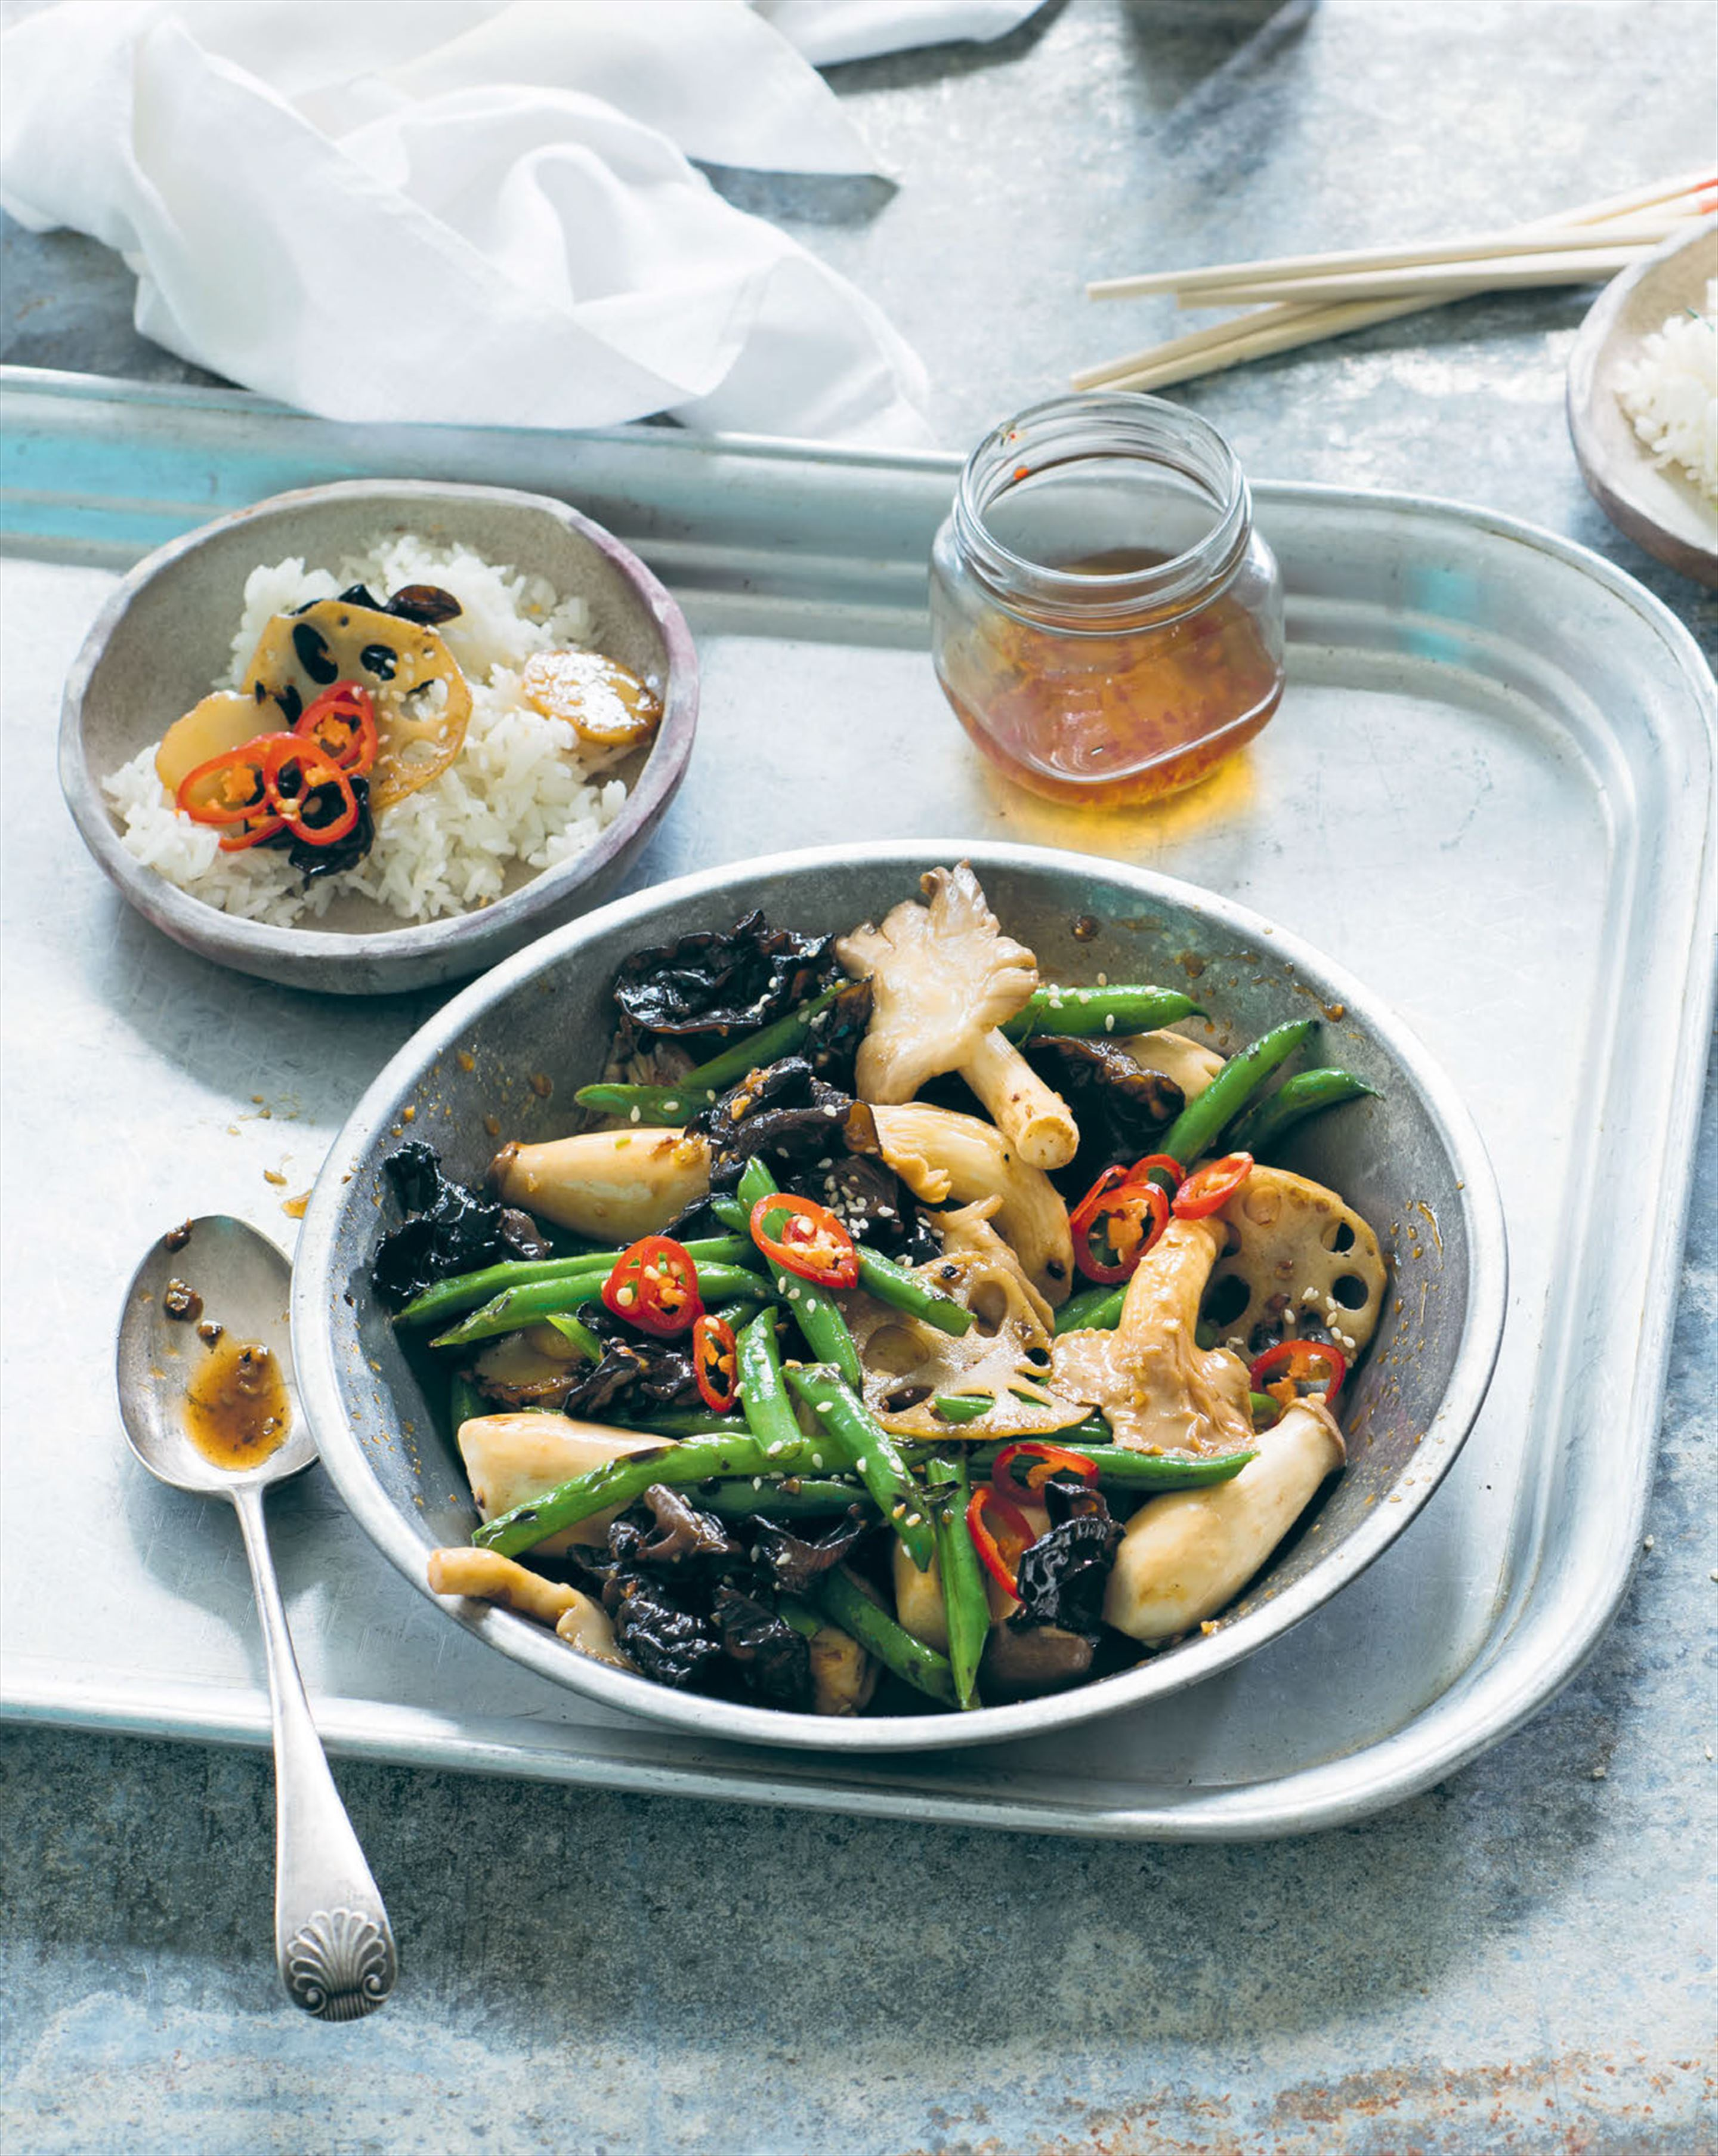 French beans wok-tossed with Asian mushrooms, lotus root & water chestnuts